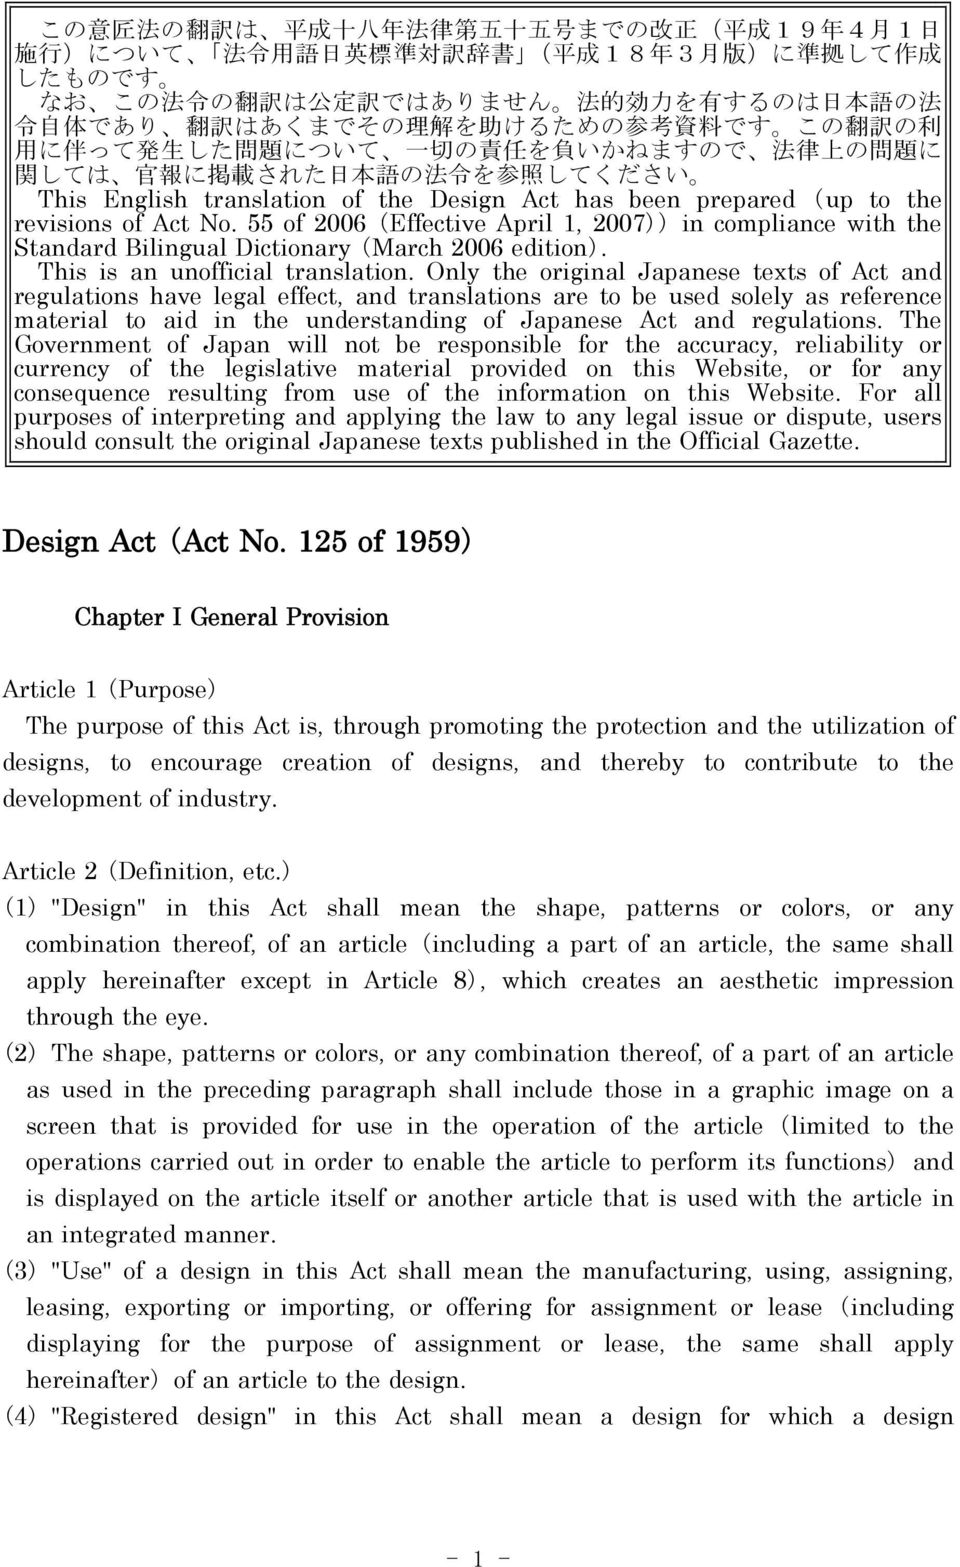 Design Act has been prepared ( up to the revisions of Act No. 55 of 2006 ( Effective April 1, 2007)) in compliance with the Standard Bilingual Dictionary ( March 2006 edition ).